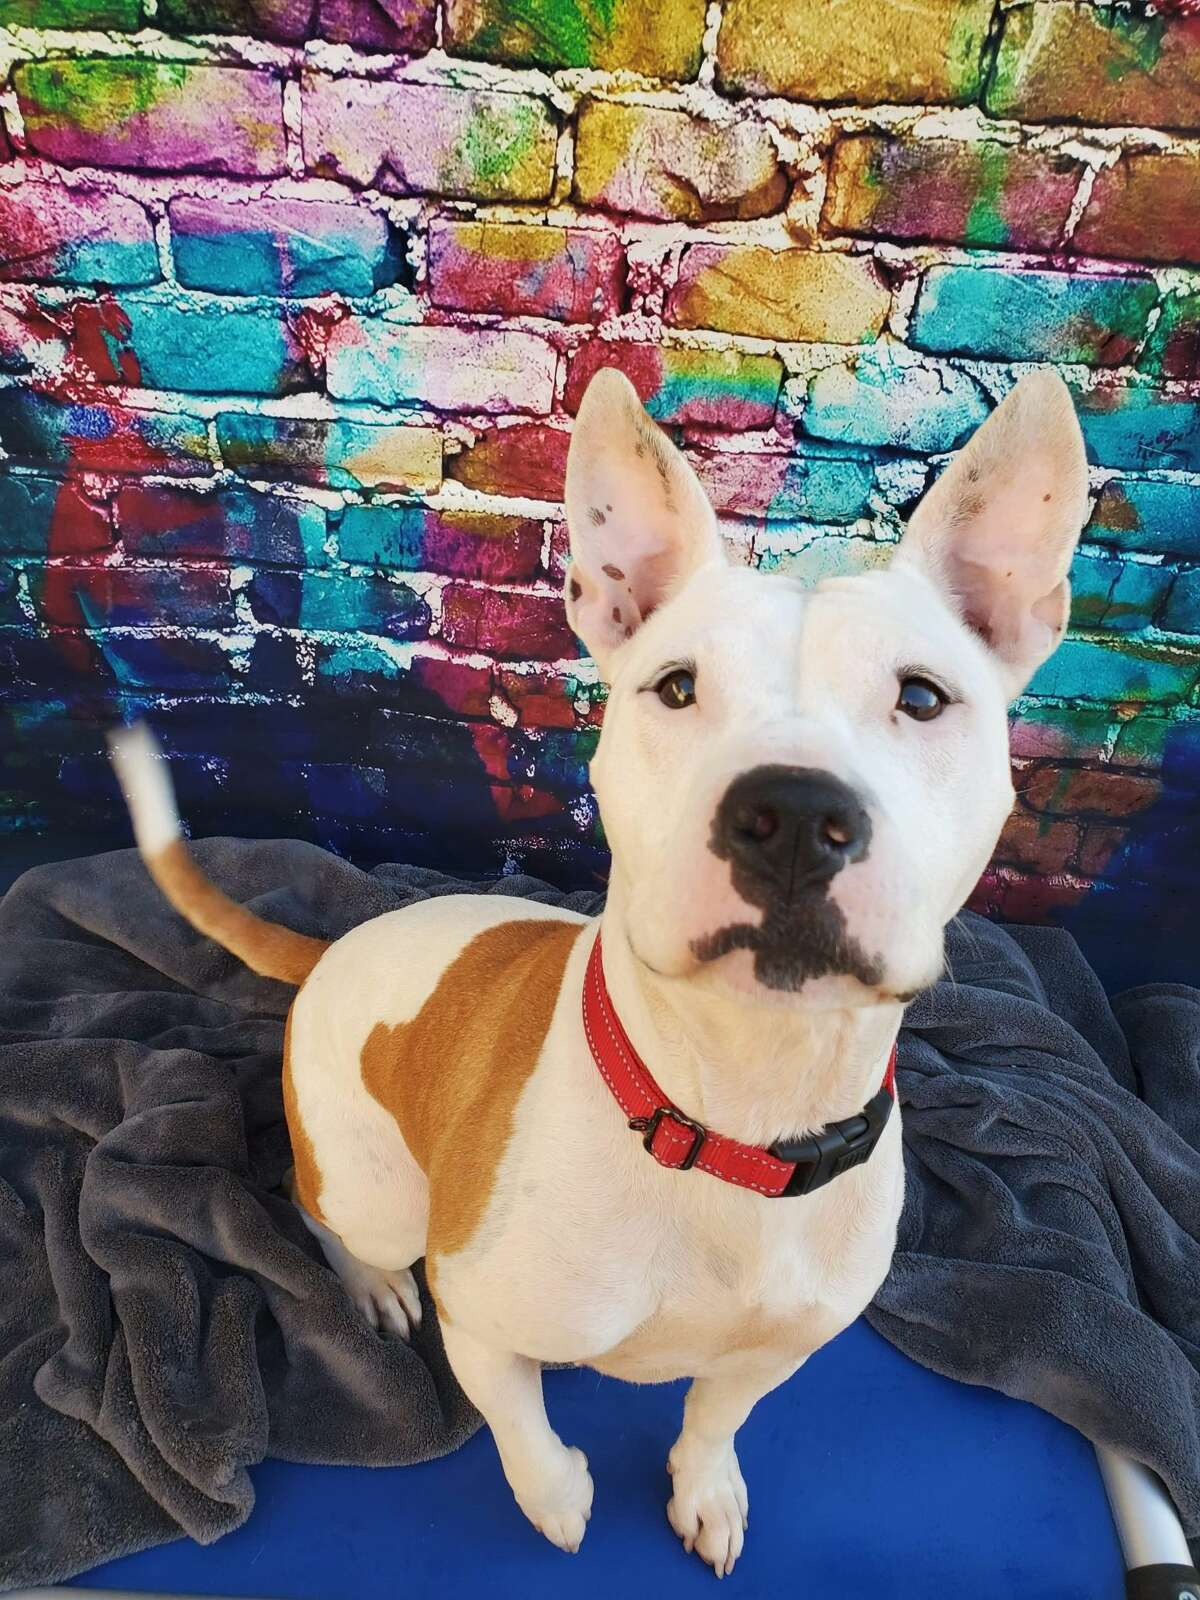 Lucy does not like to share her toys or food so her new family will need to work on home management for her issues. She is up for adoption at the Fulton County Regional SPCA.